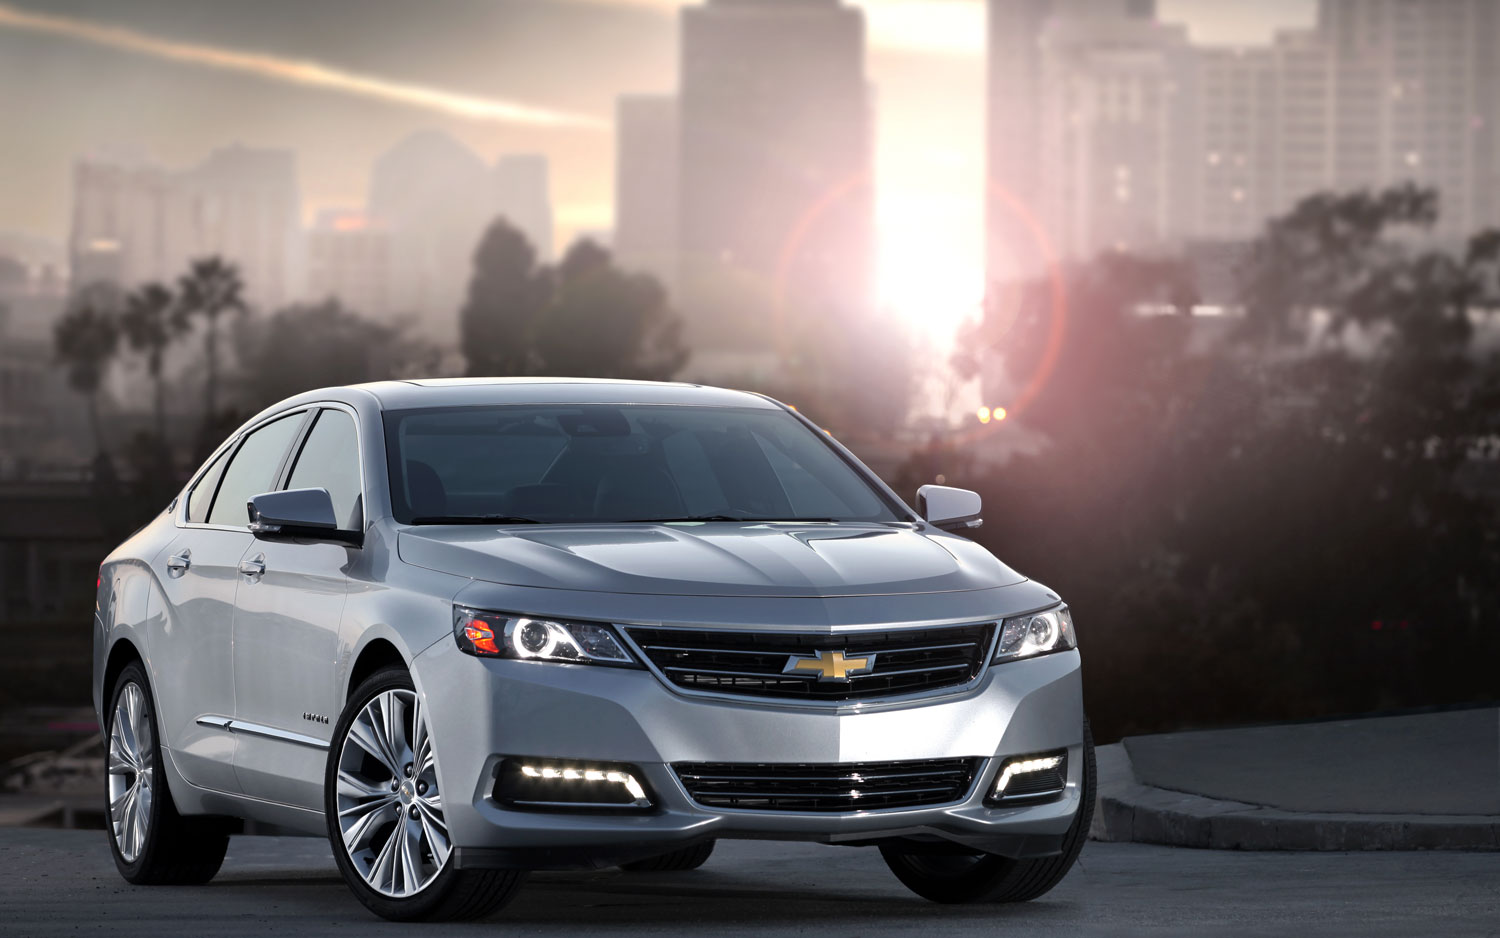 2014 Chevrolet Impala Front Right View1